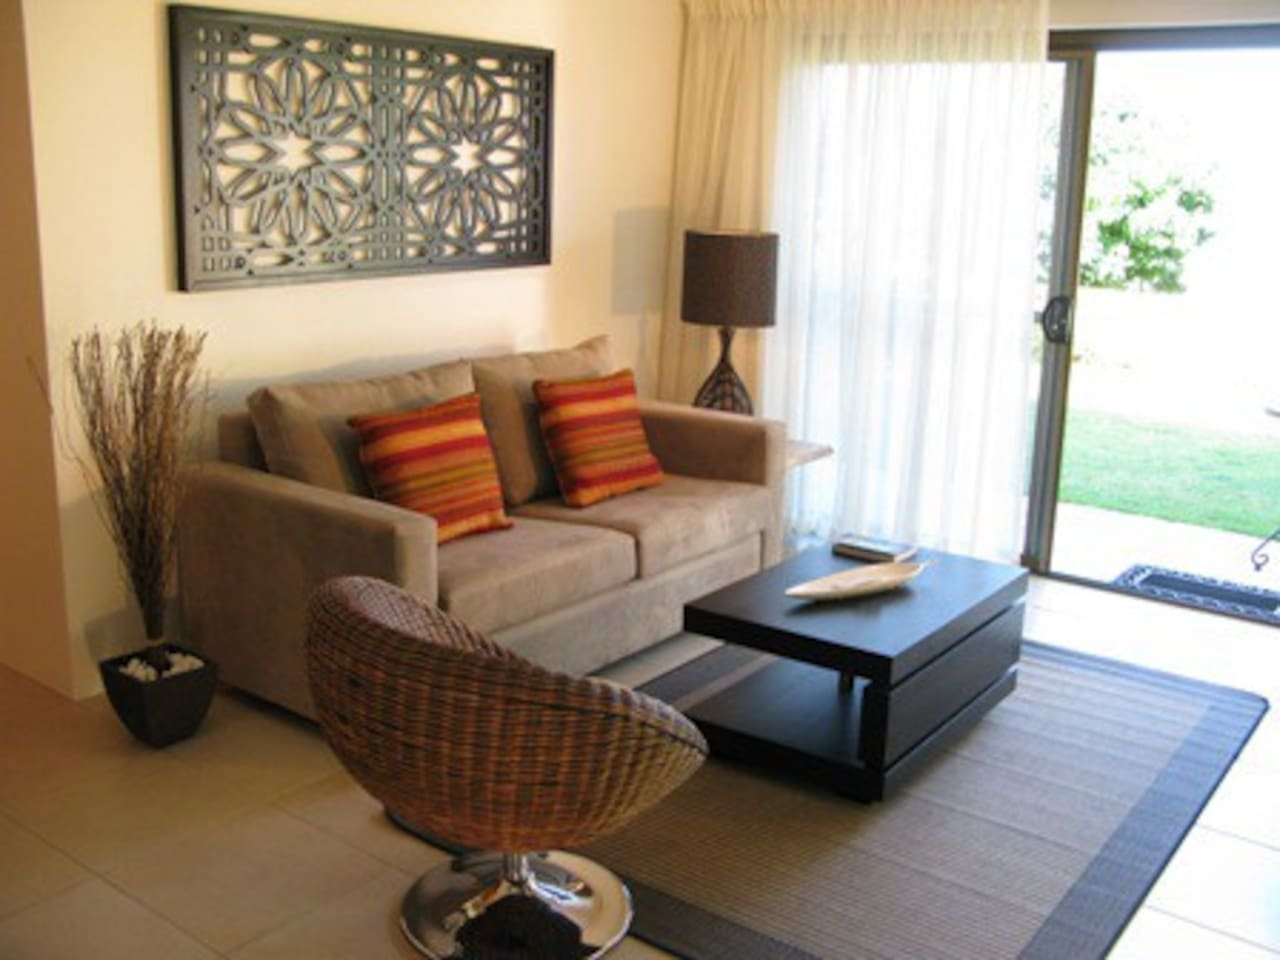 This is the lounge area looking out to the garden and ocean views